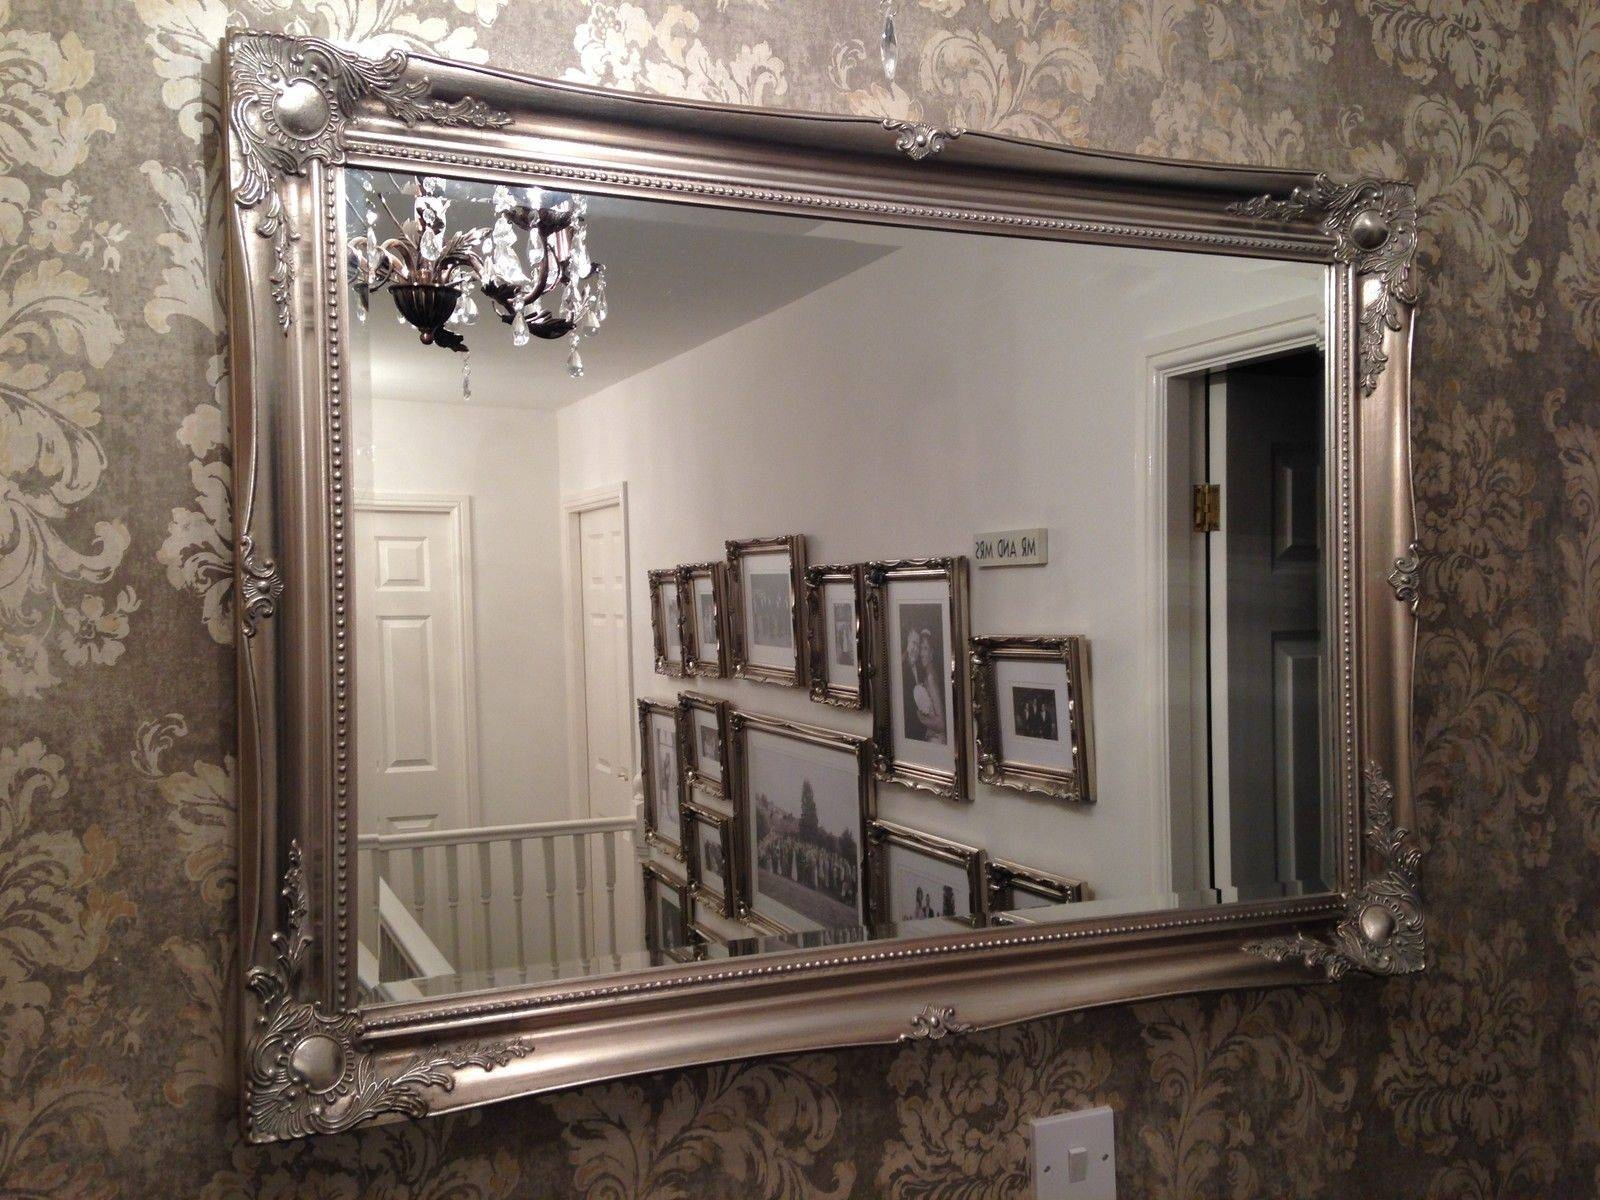 X Large Antique Silver Shabby Chic Ornate Decorative Wall Mirror For Large Ornate Wall Mirrors (View 5 of 15)